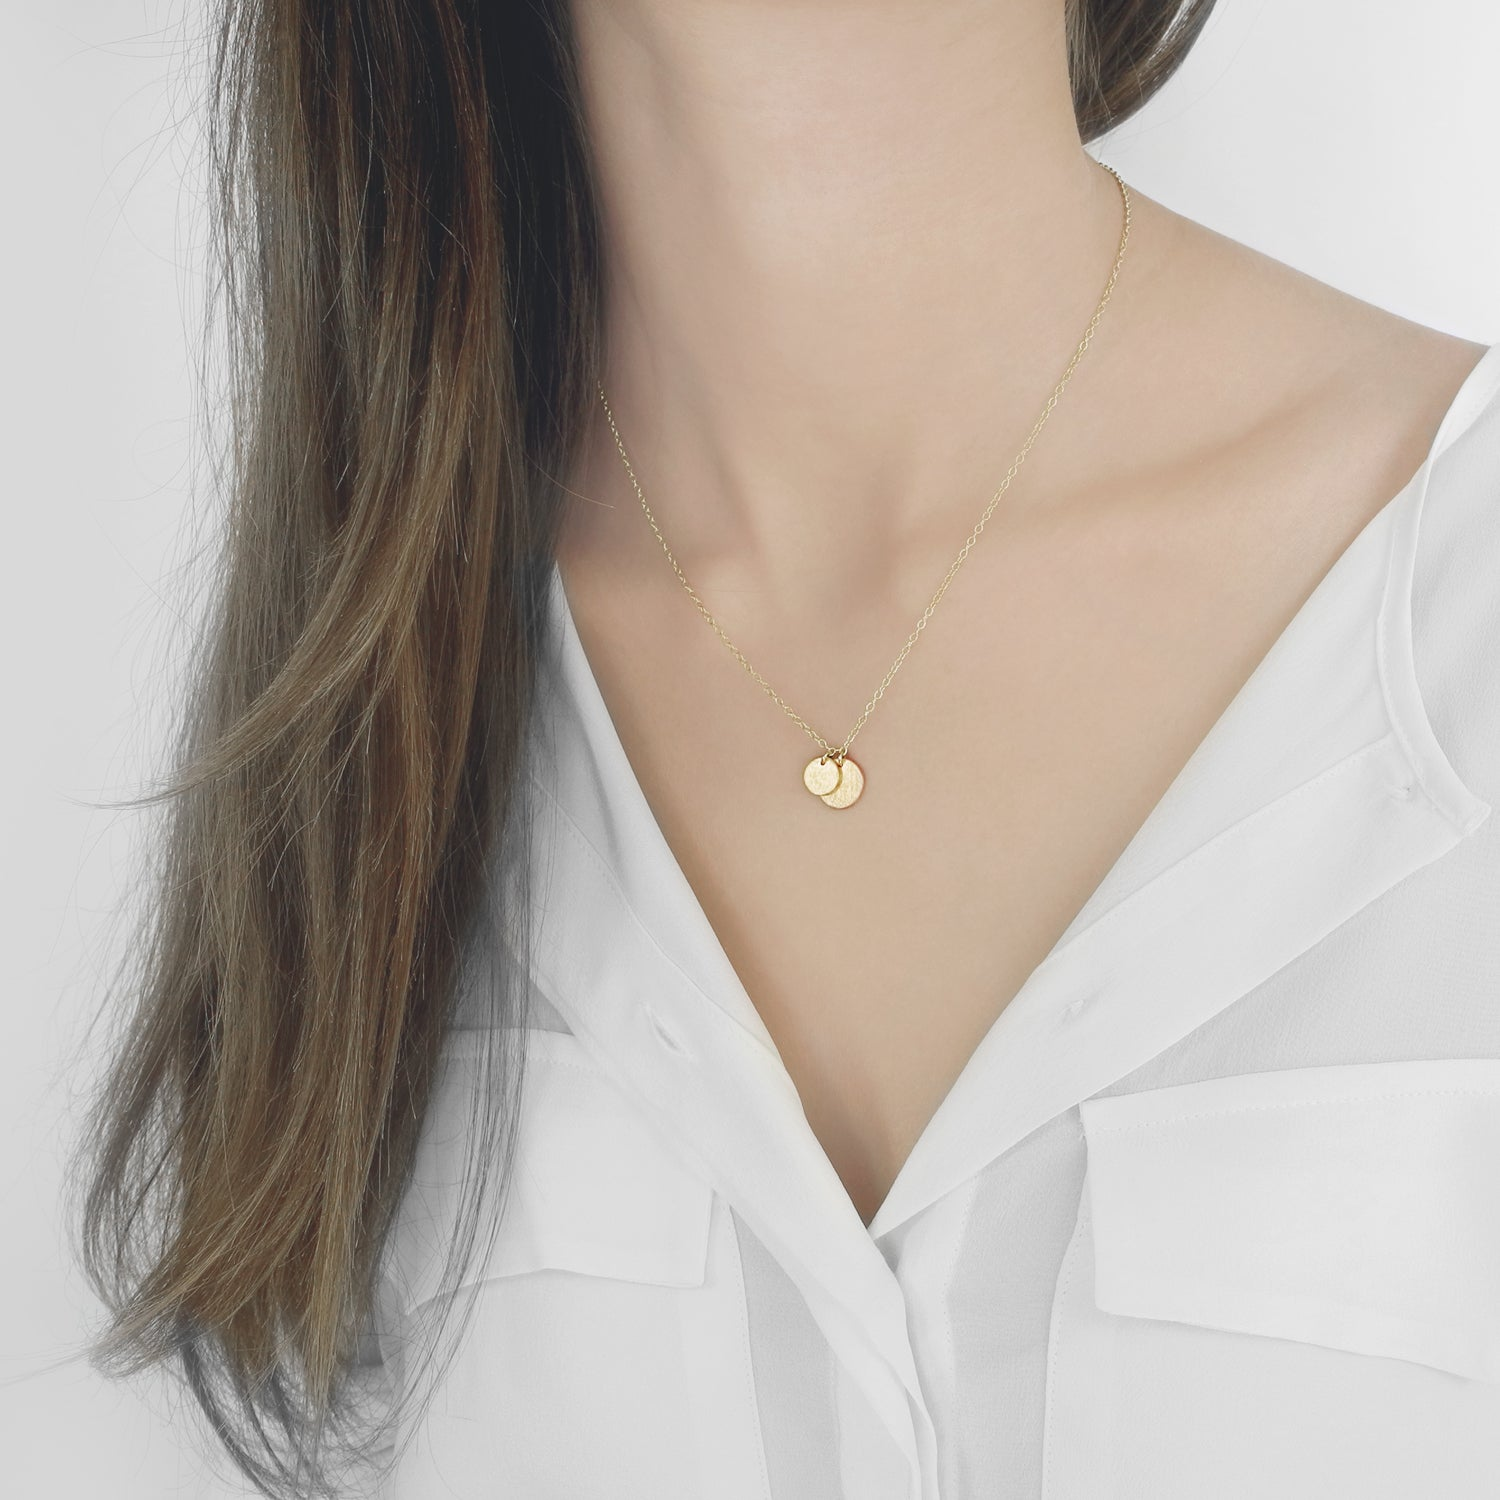 A delicate duo of round tags on a simple link chain exudes sophistication and elegance. The brushed surfaces add a dazzling touch to these timeless pendants. Classic and captivating, this necklace is striking in its simplicity.